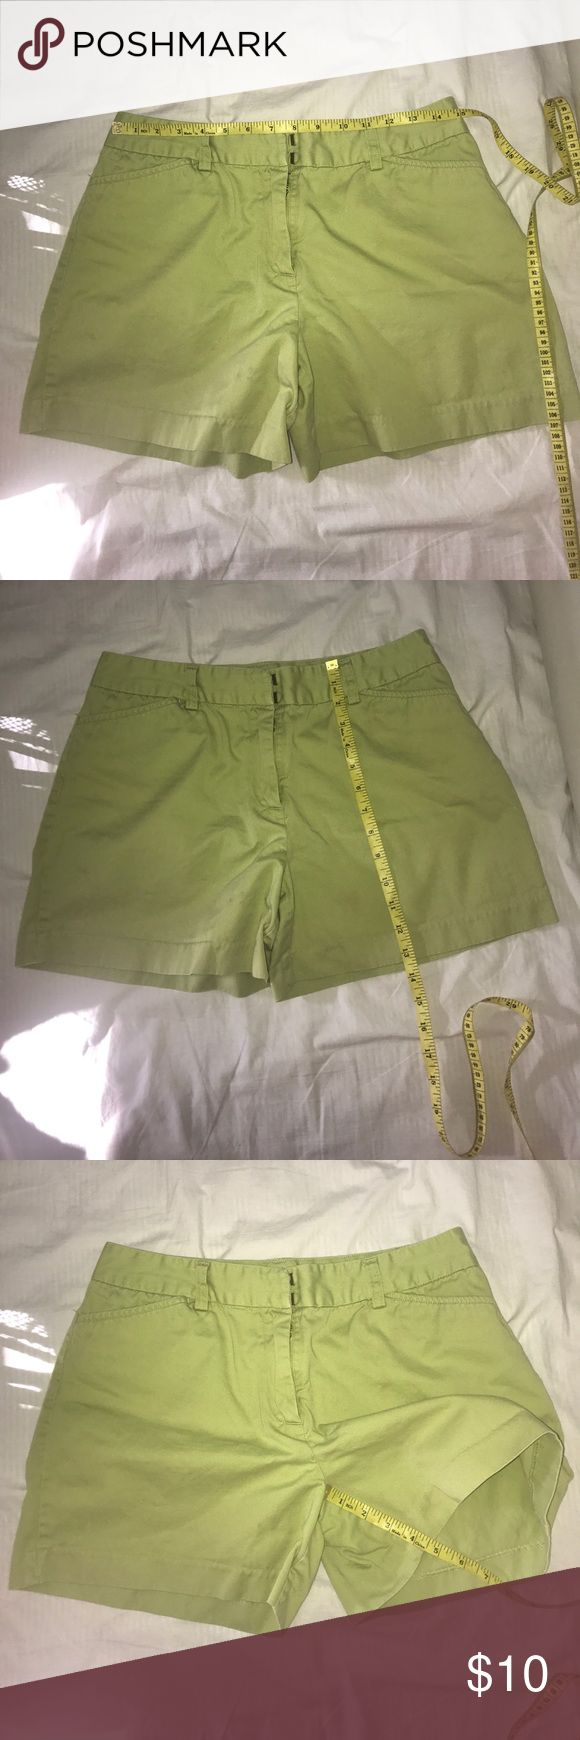 Khakis Internacional Design Shorts Lime green Shorts in good condition. Small spot see last pic Shorts Skorts